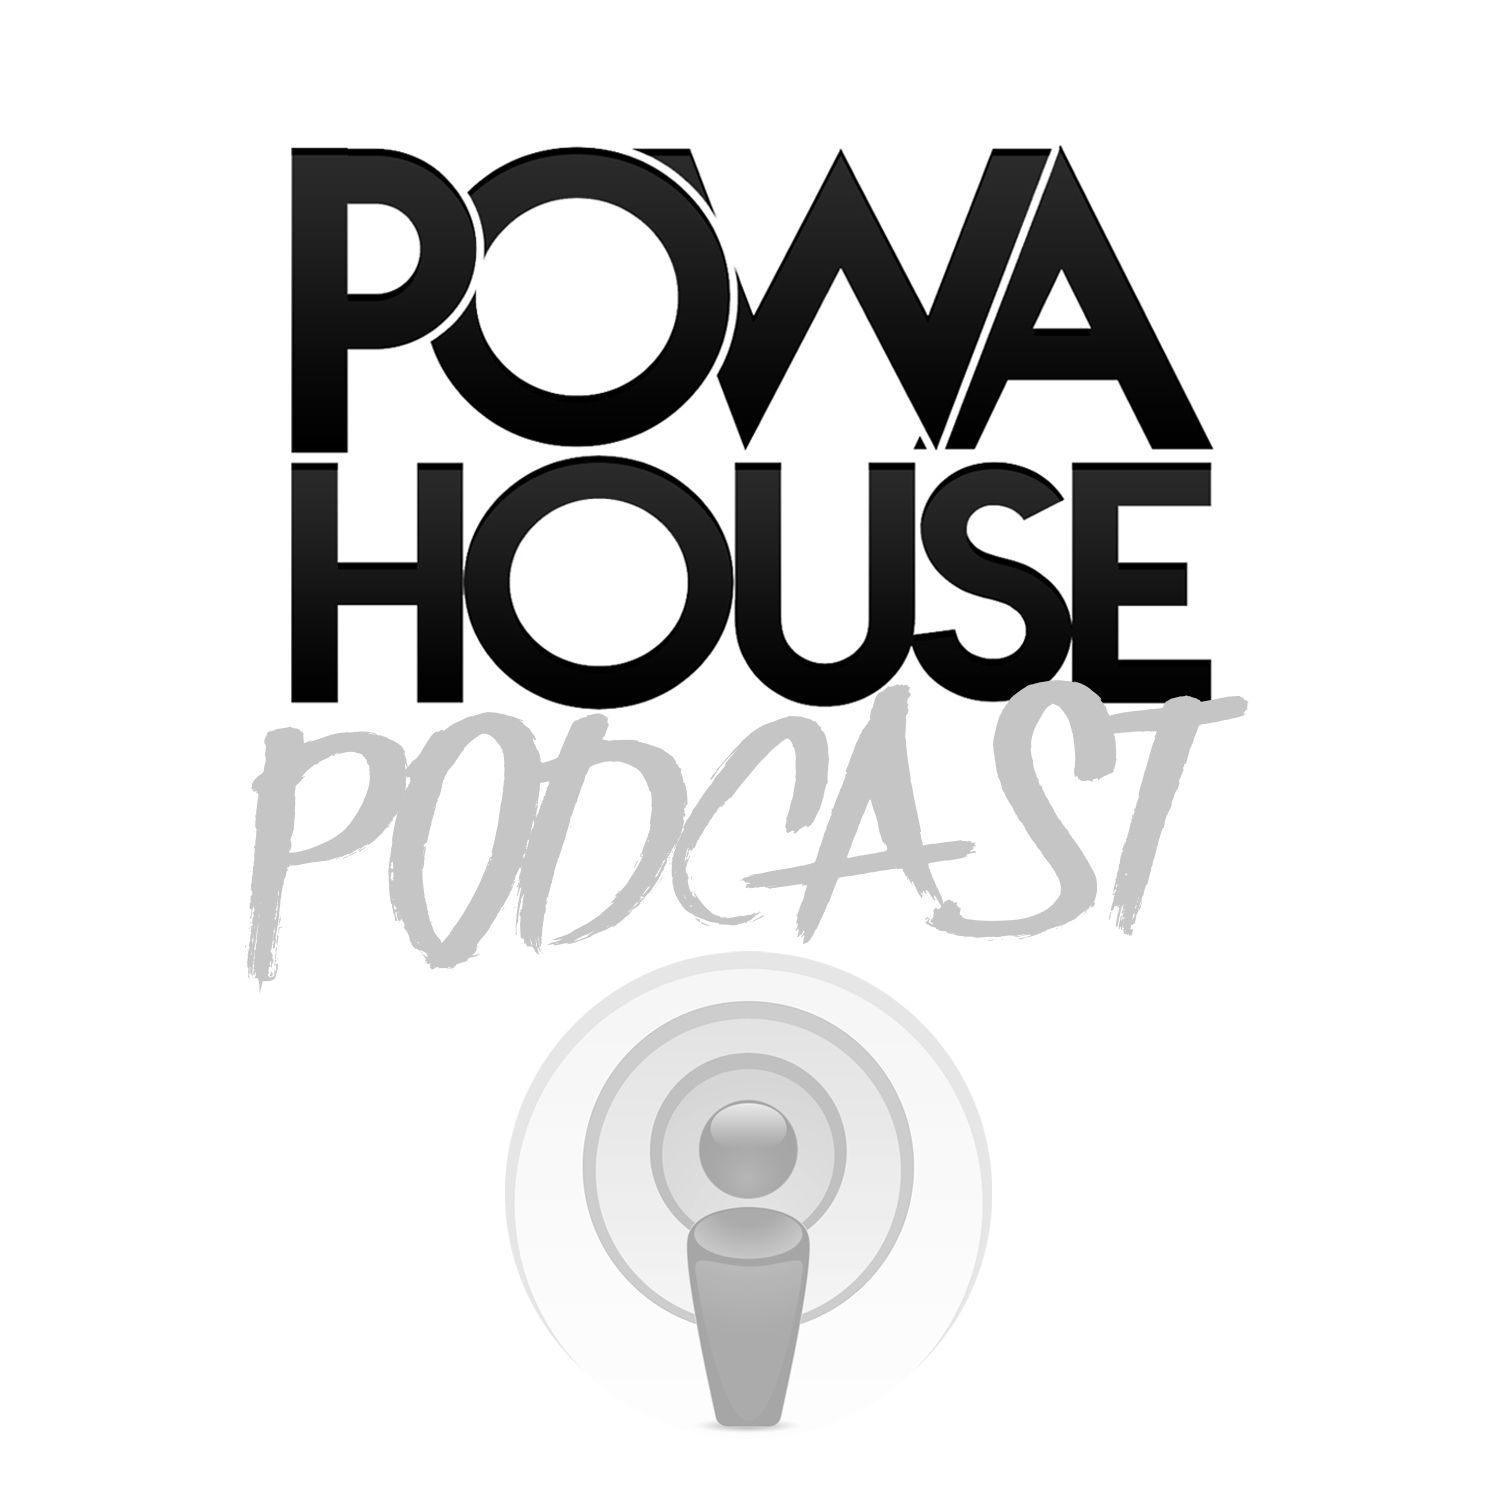 POWAHOUSE PODCAST